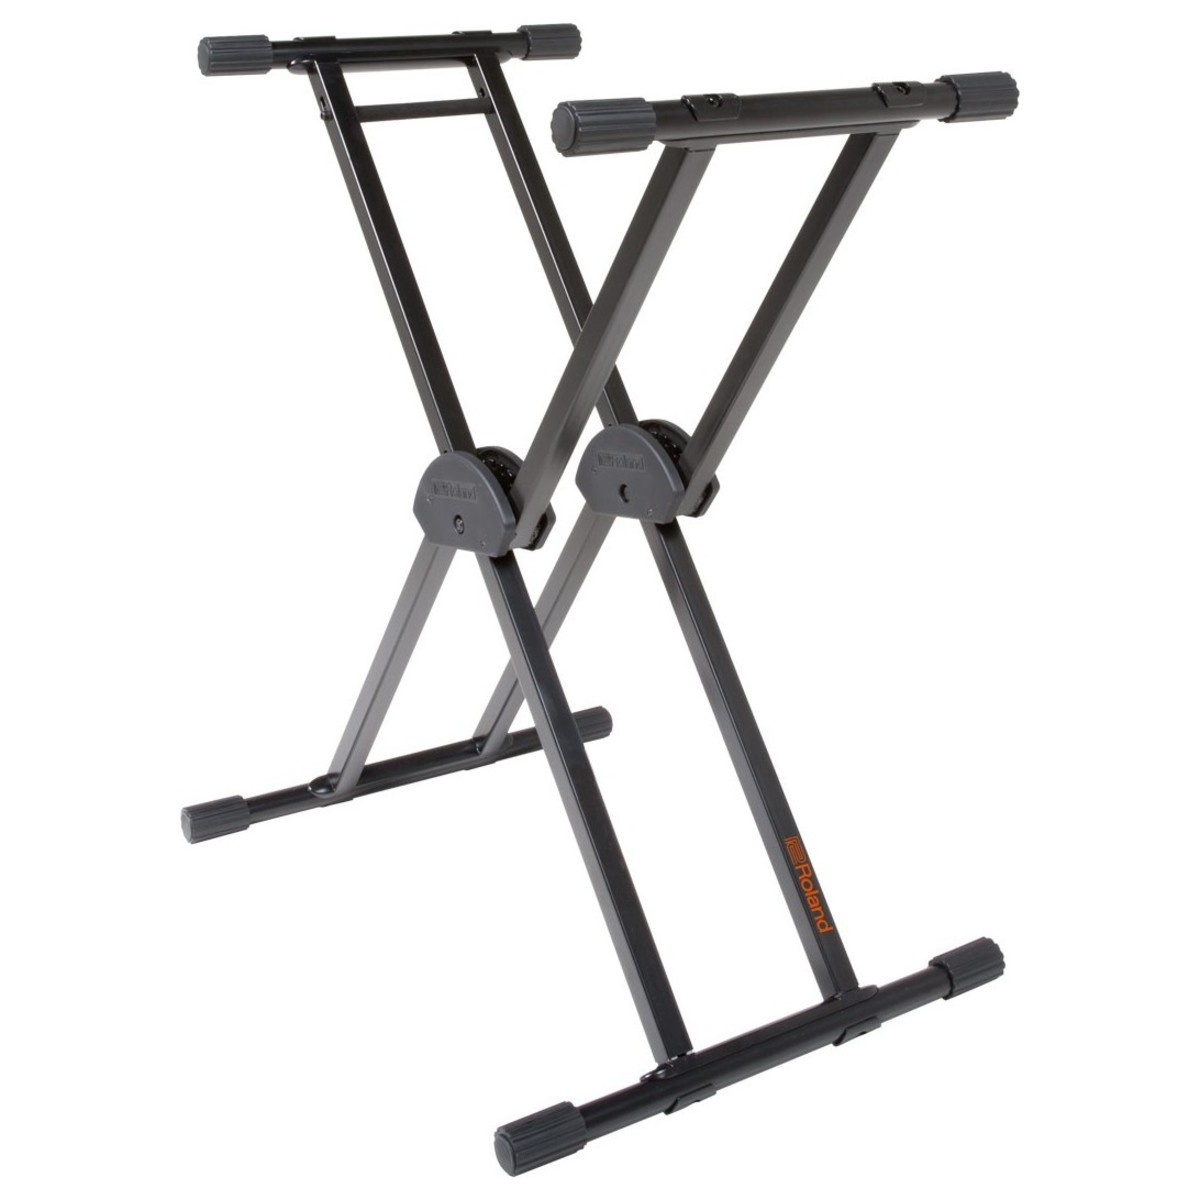 roland ks 20x double brace keyboard stand at gear4music. Black Bedroom Furniture Sets. Home Design Ideas